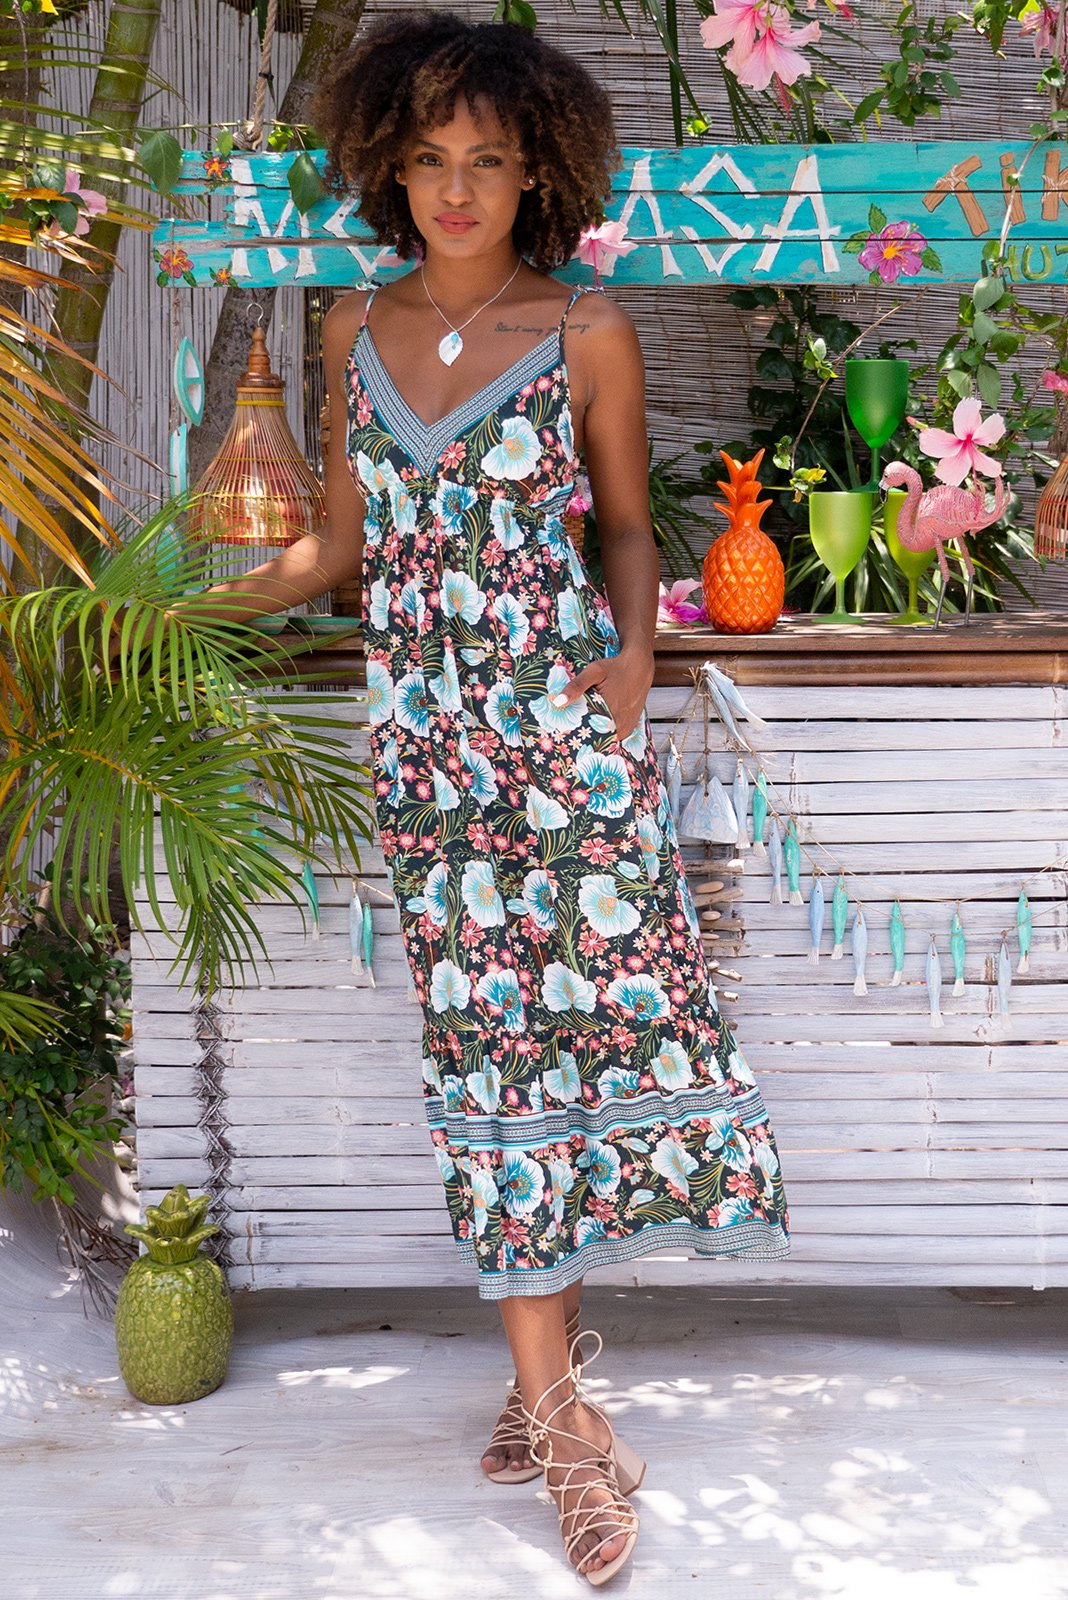 Sapphire Temptation Teal Maxi Dress for your next night on the town features woven 100% rayon, elasticated under bust, sleeveless with adjustable straps, V neckline, side pockets in black base with teal, white, magenta, blue and gold floral print with complimentary border print.